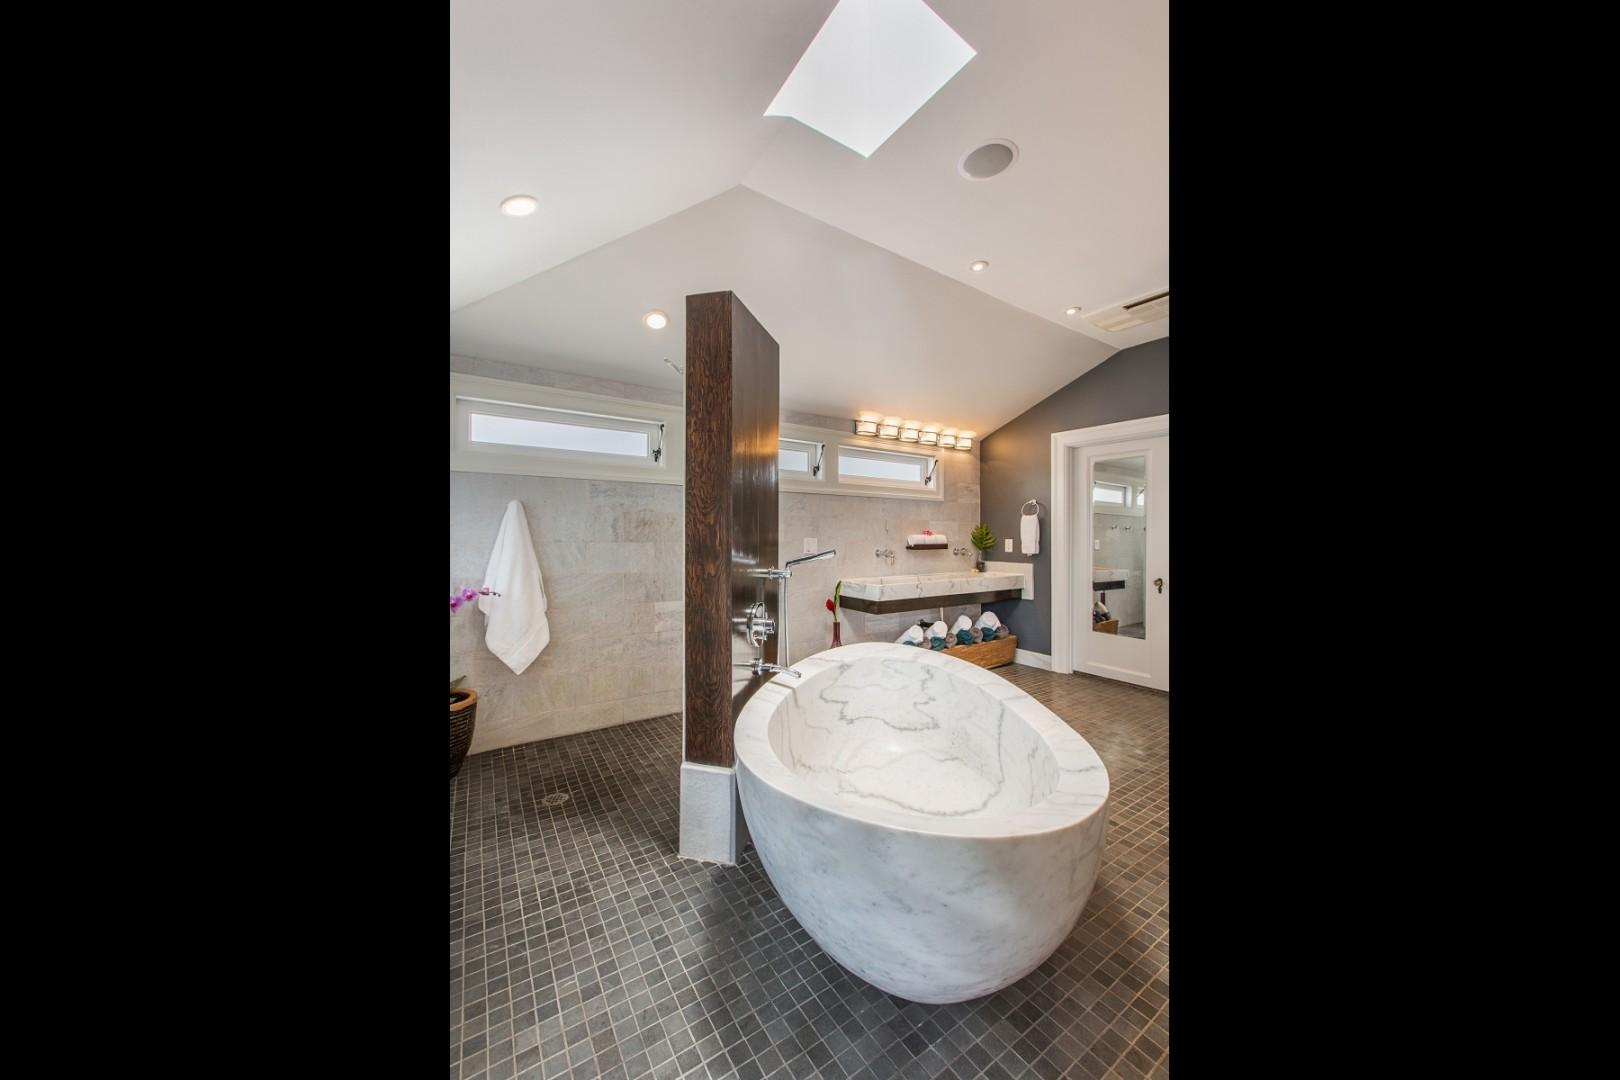 Master en suite, with an amazing marble tub! The perfect spot to soak after a long day of fun in the sun.